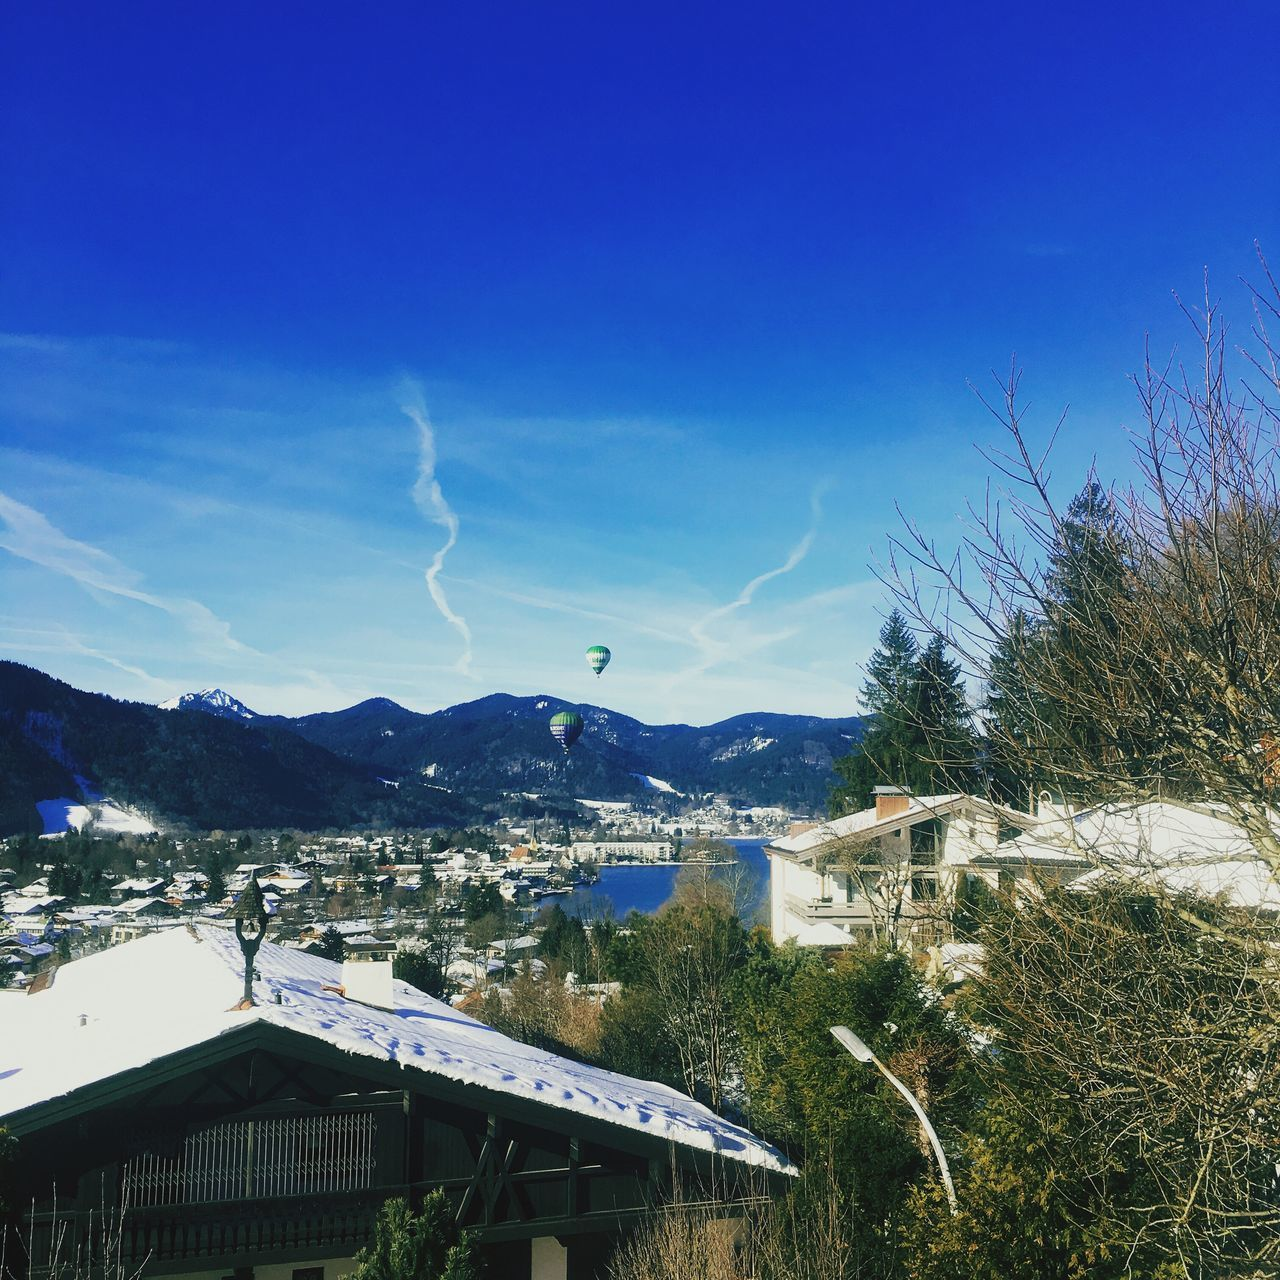 mountain, town, architecture, blue, nature, building exterior, no people, outdoors, tree, day, roof, built structure, beauty in nature, sky, scenics